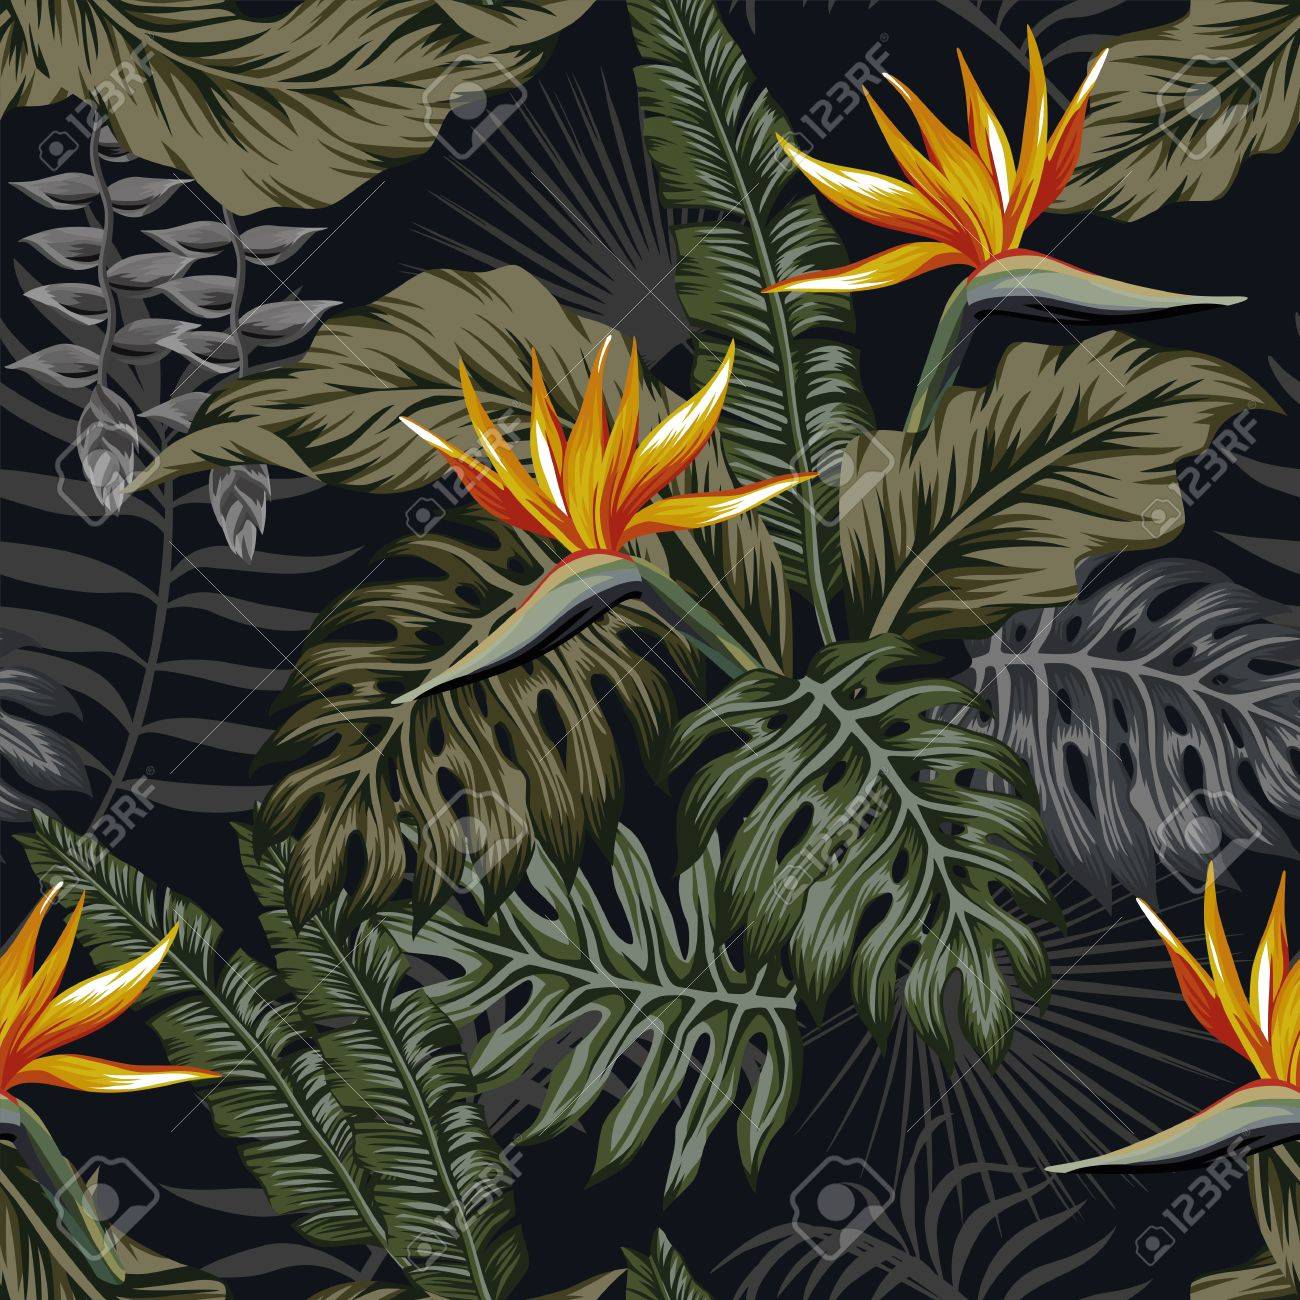 Night Jungle Tropical Seamless Pattern Plants And Flowers Dark Royalty Free Cliparts Vectors And Stock Illustration Image 86543920